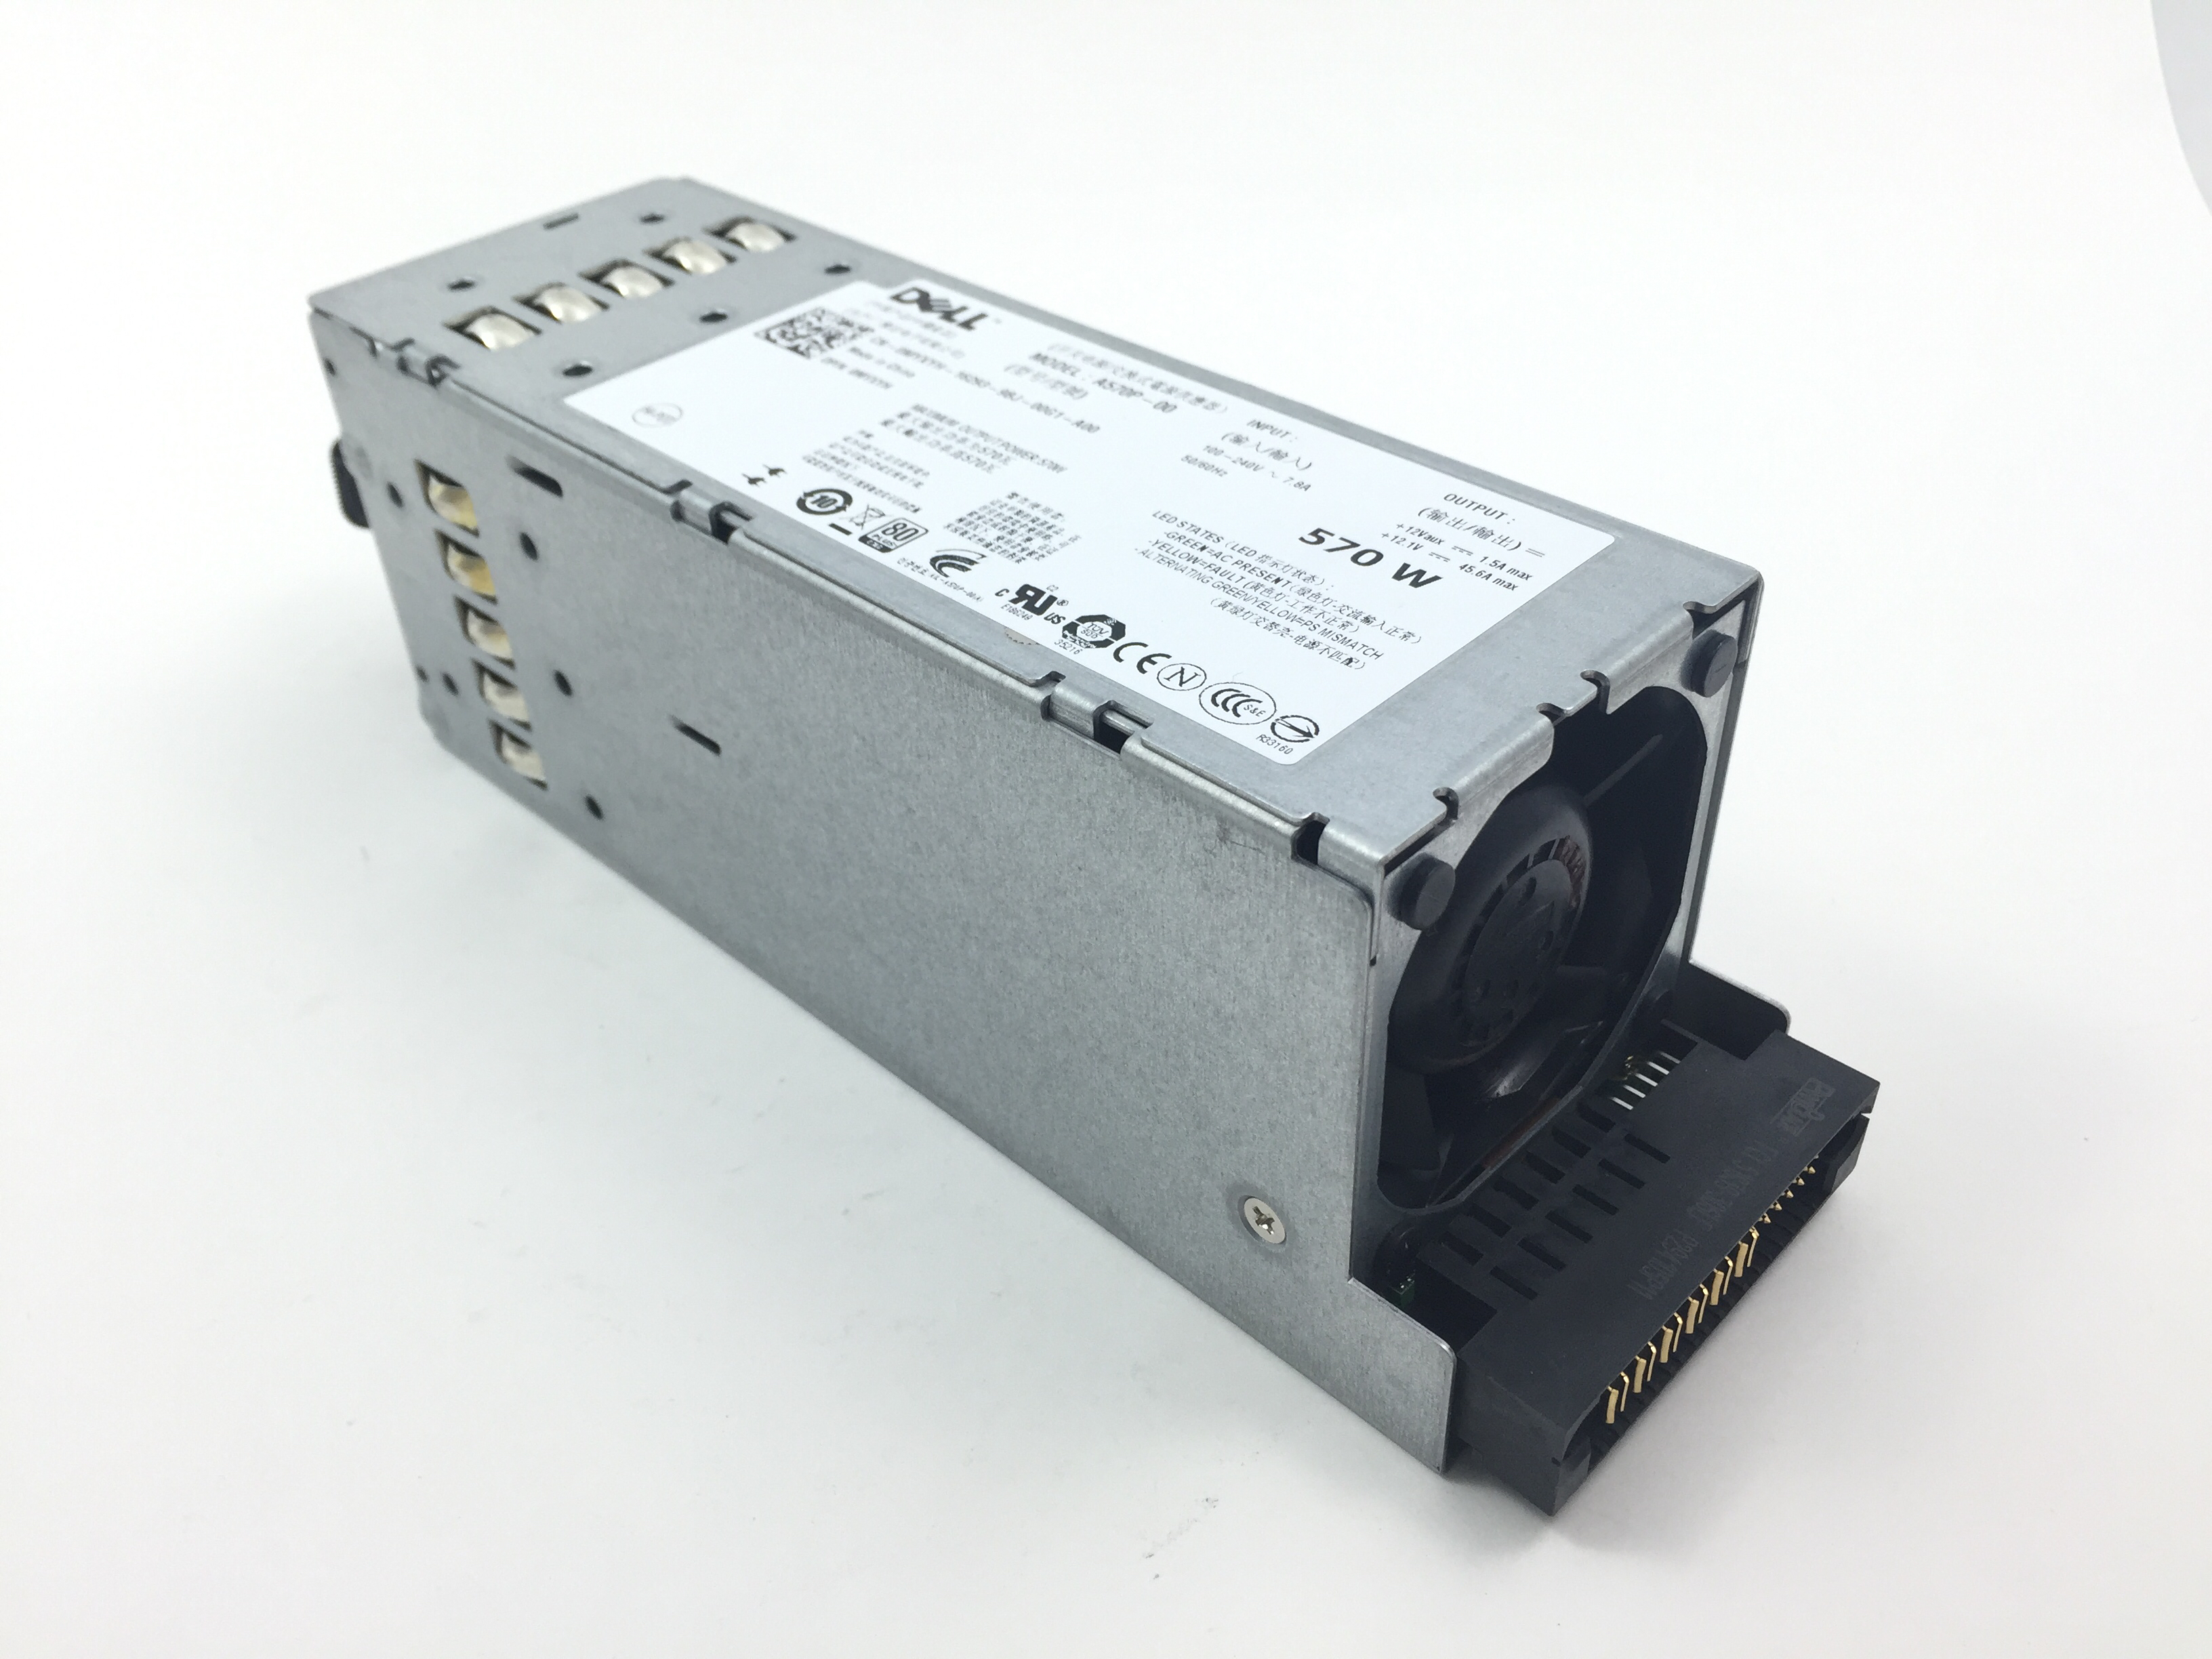 Dell PowerEdge R710 T610 570W Power Supply (A570P-00)